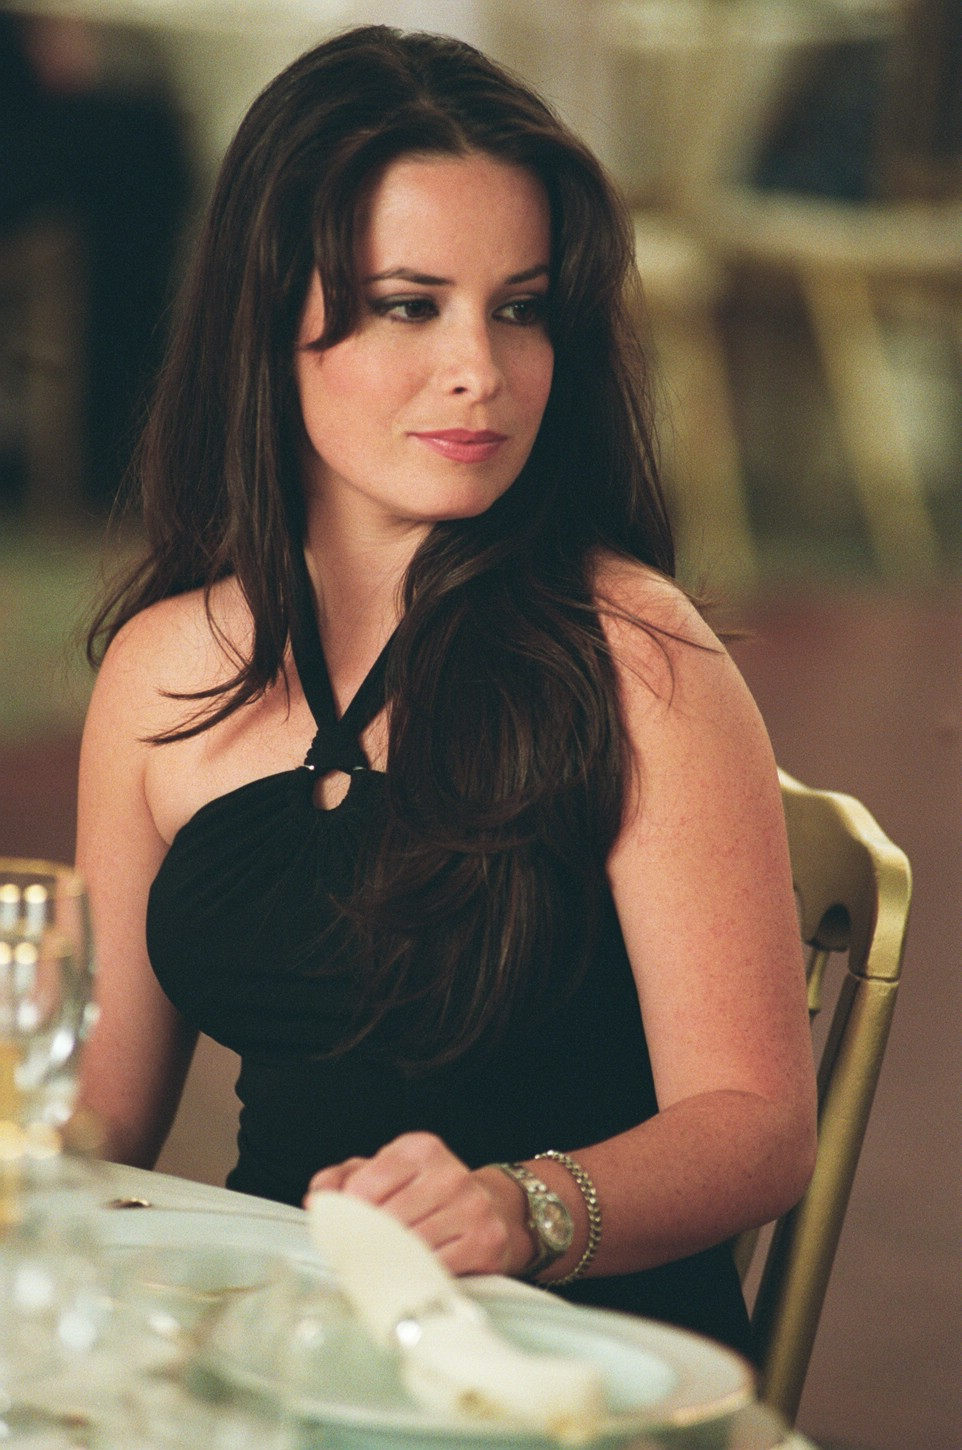 Holly Marie Combs Adult vids dildo picture photos